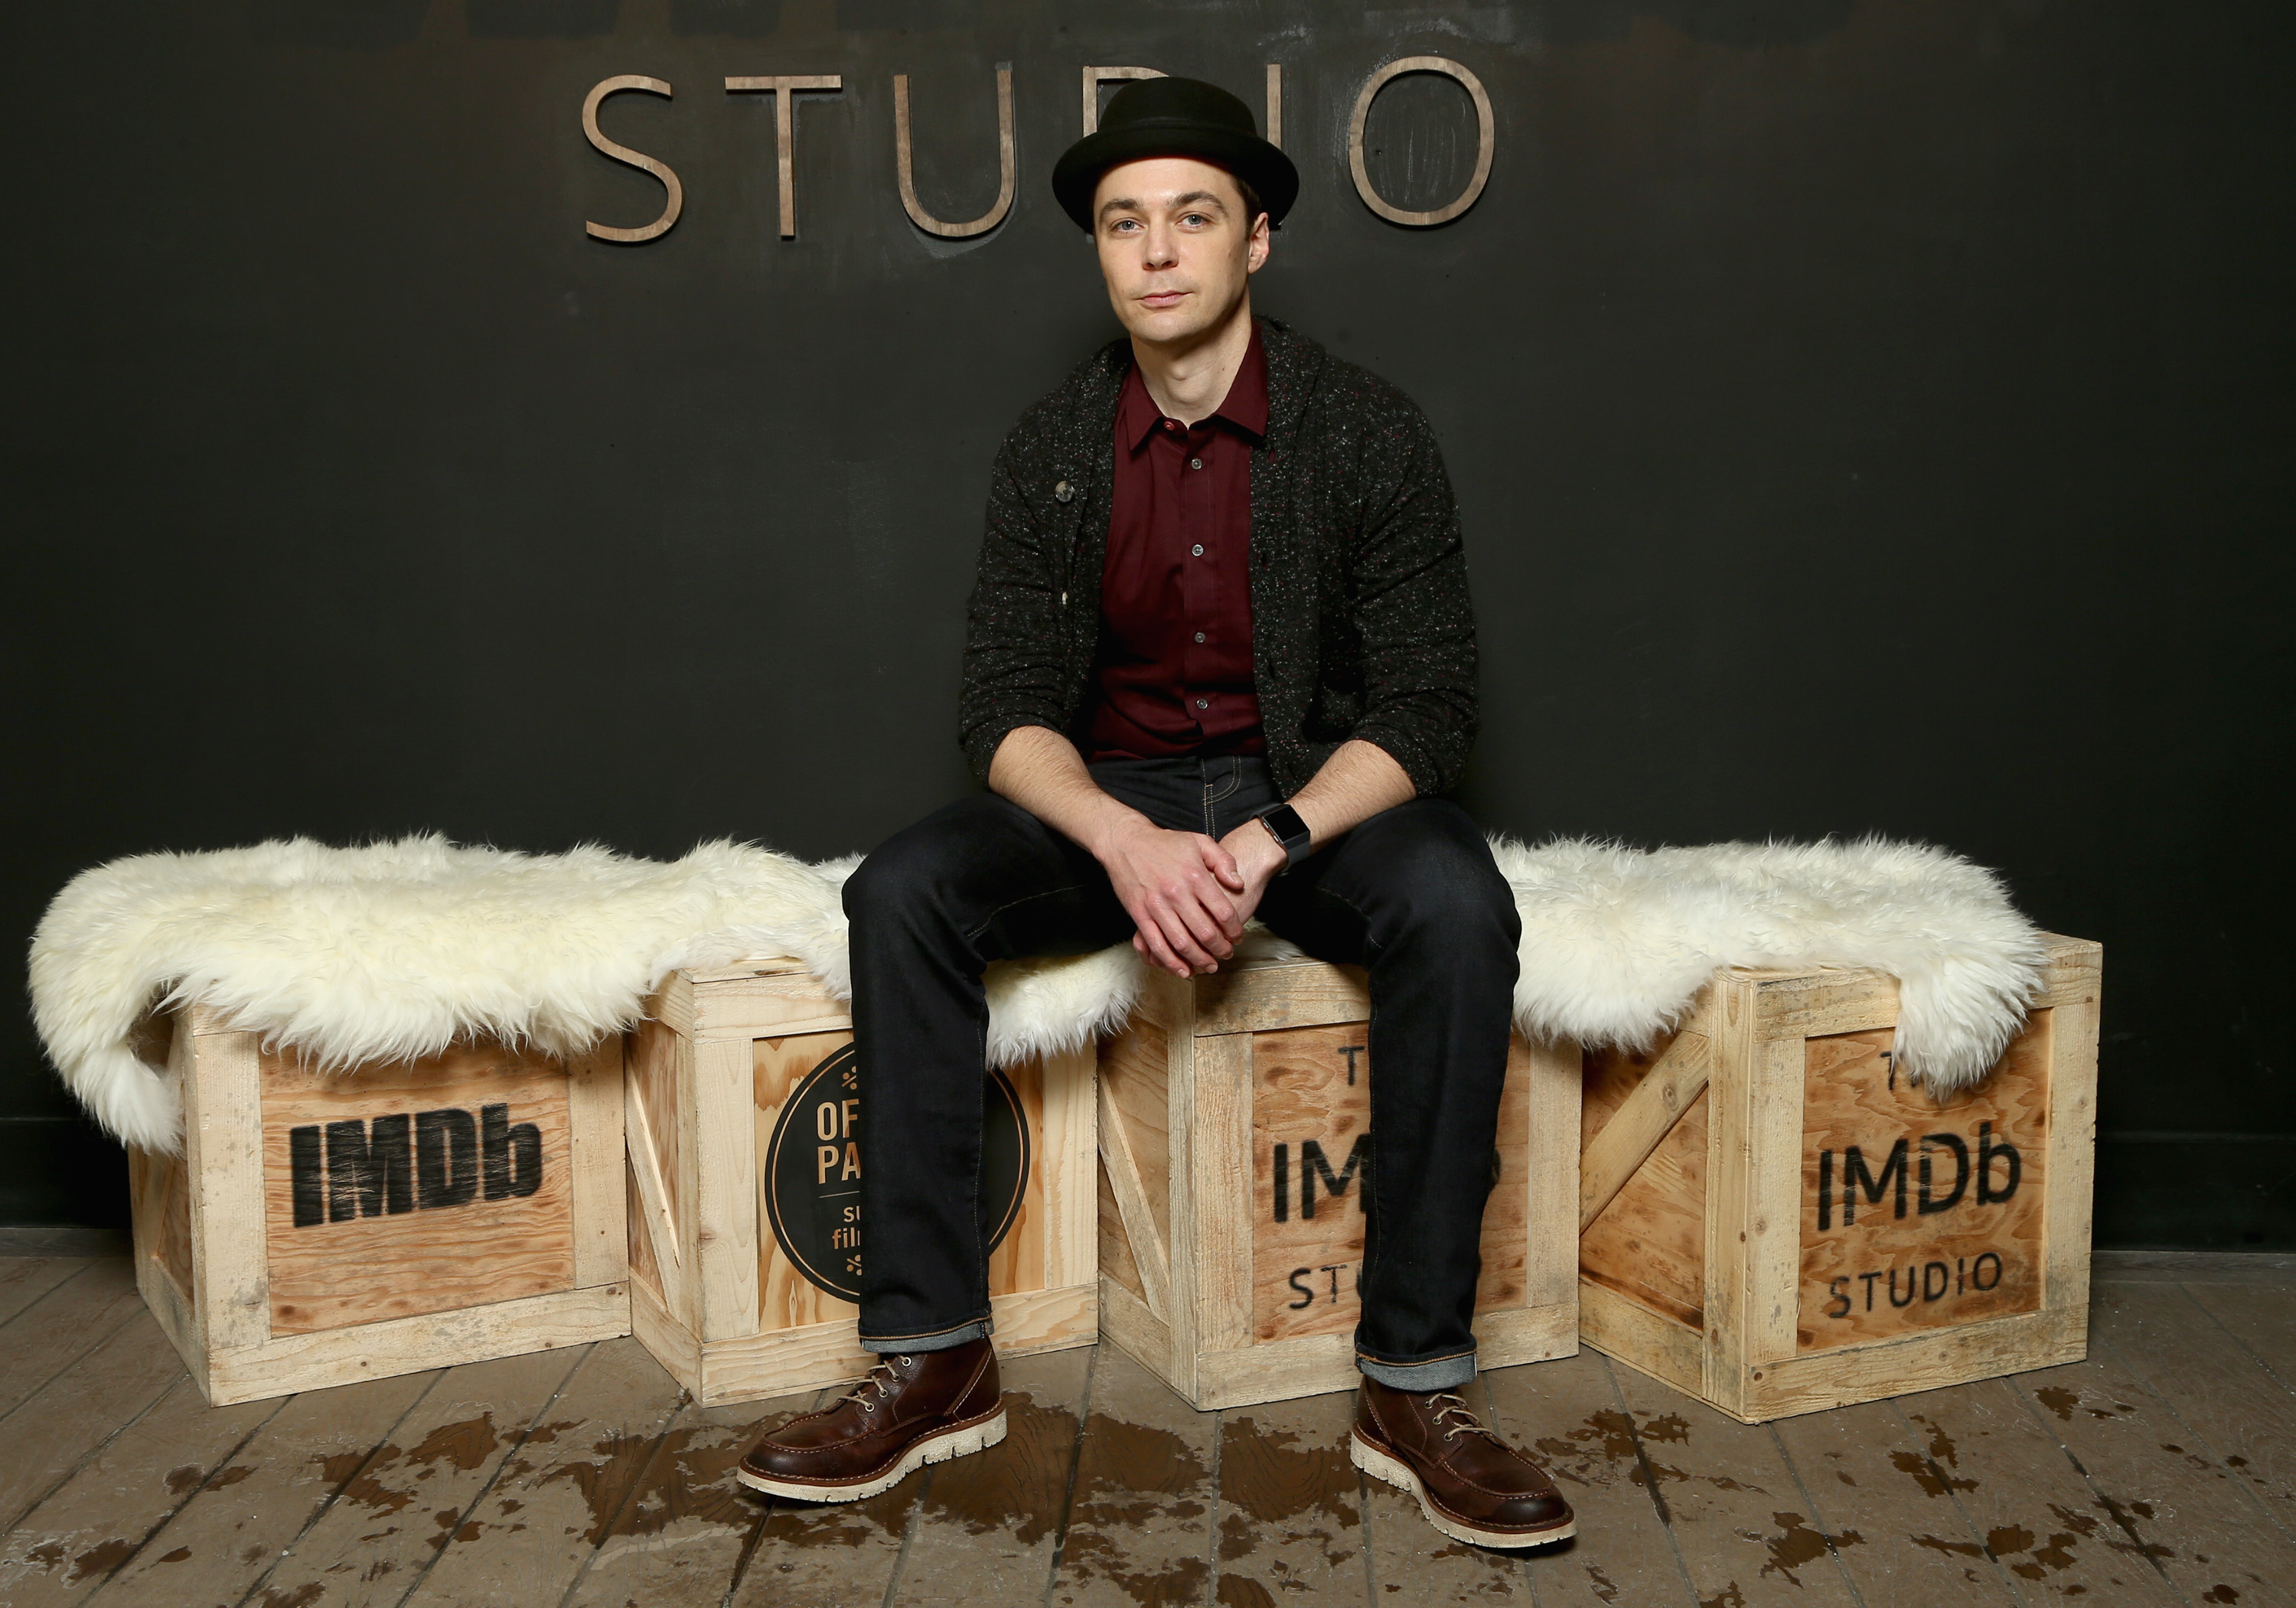 Actor Jim Parsons of 'A Kid Like Jake' attends The IMDb Studio and The IMDb Show on Location at The Sundance Film Festival on January 21, 2018 in Park City, Utah. (Photo by Tommaso Boddi/Getty Images for IMDb)